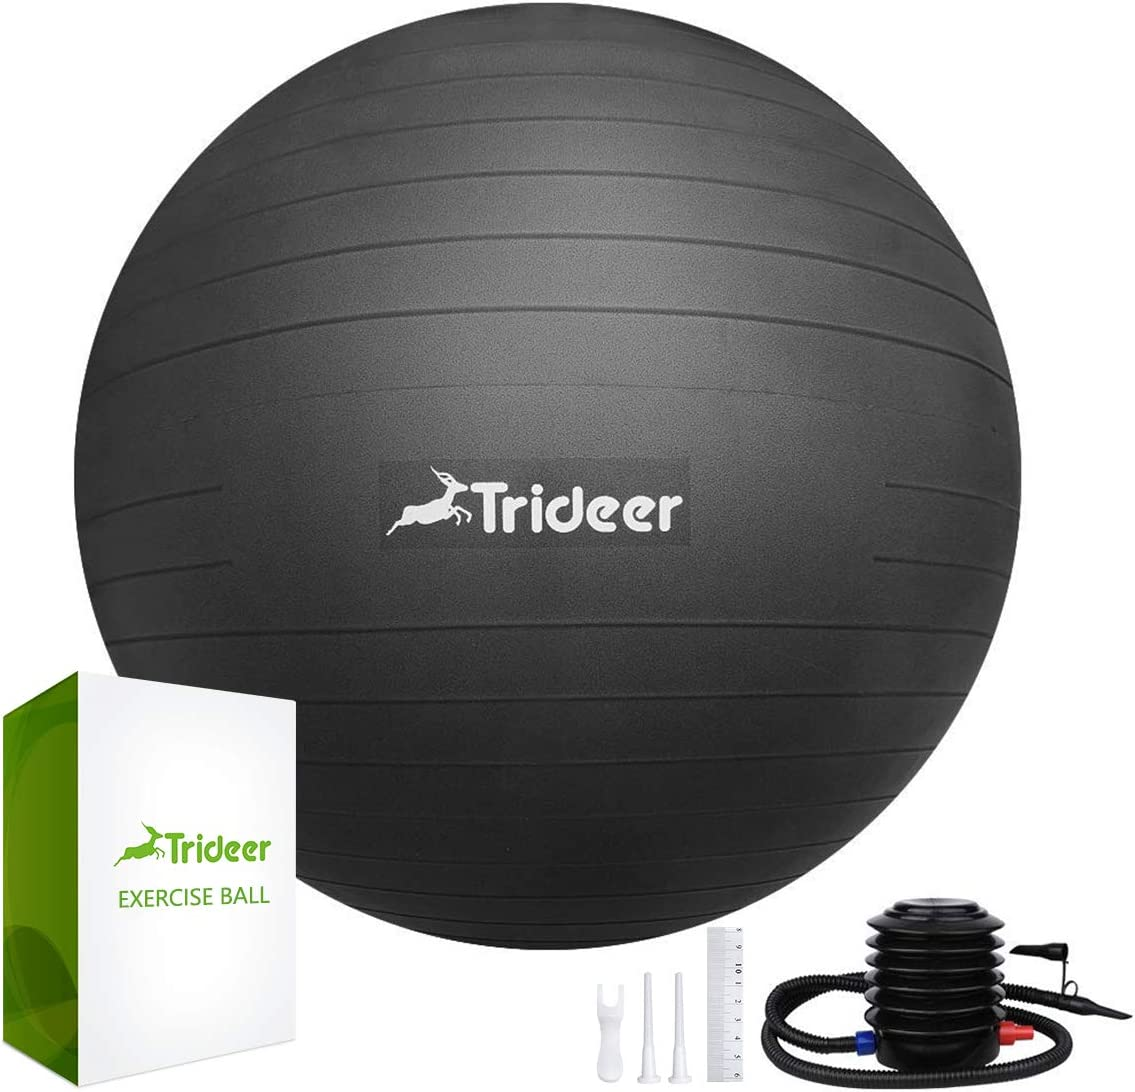 Trideer Exercise Ball 45-85cm Extra Thick Yoga Ball Chair